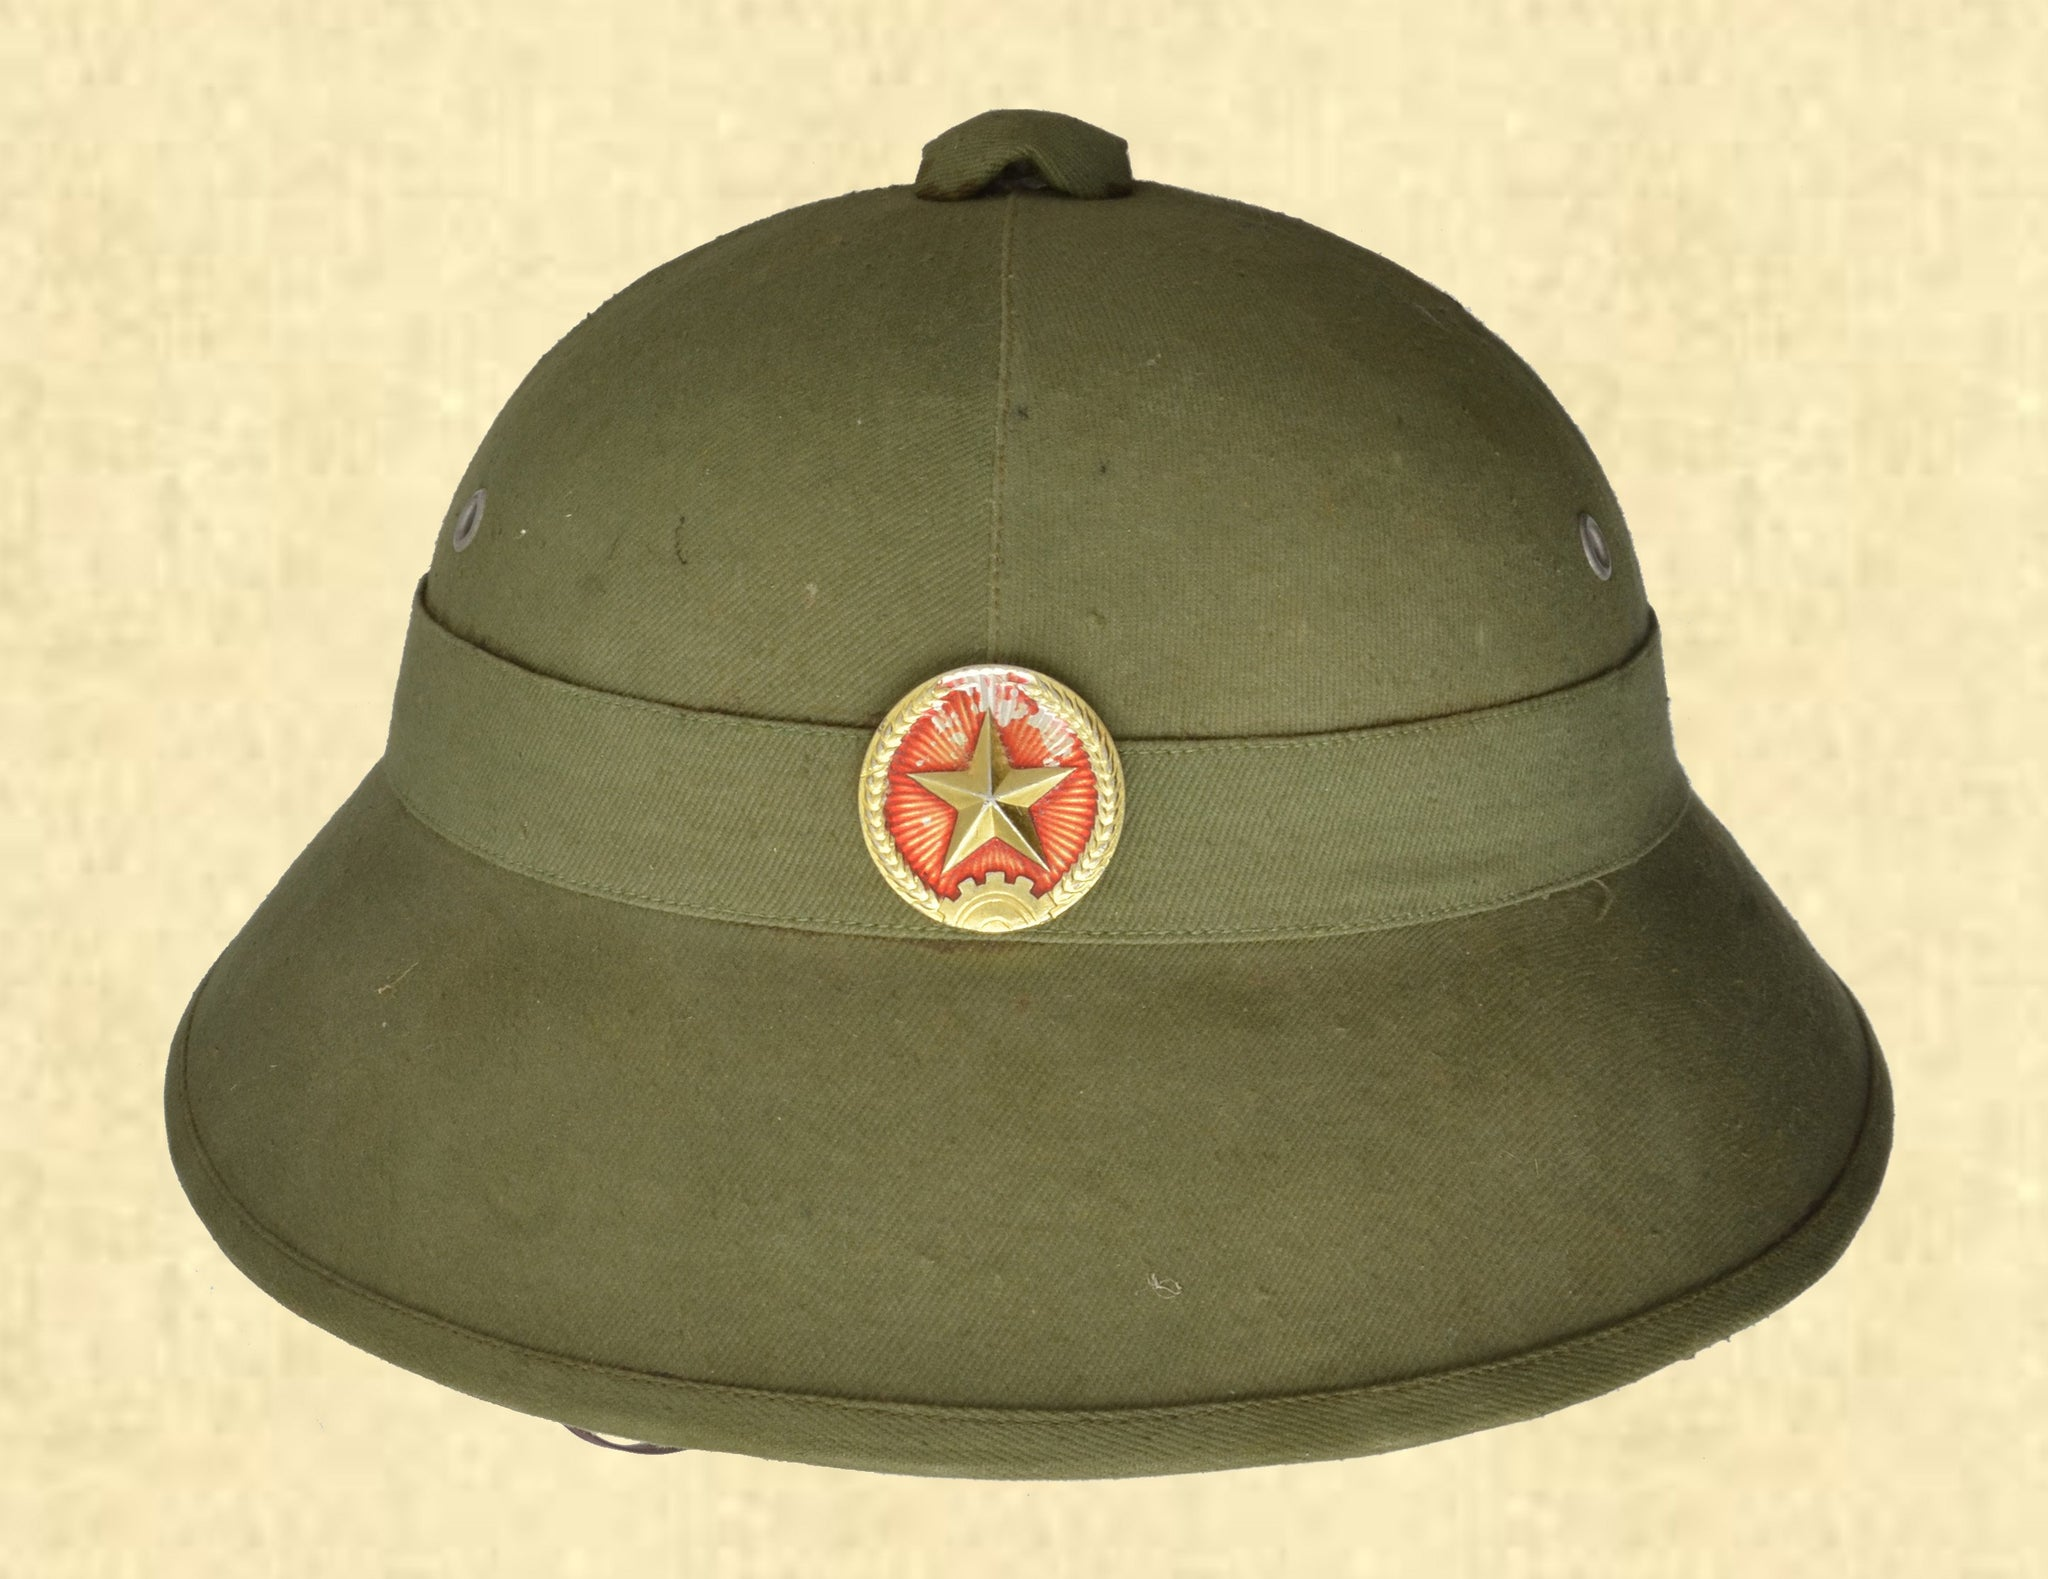 VIETNAMESE ARMY PITH HELMET W/RED STAR